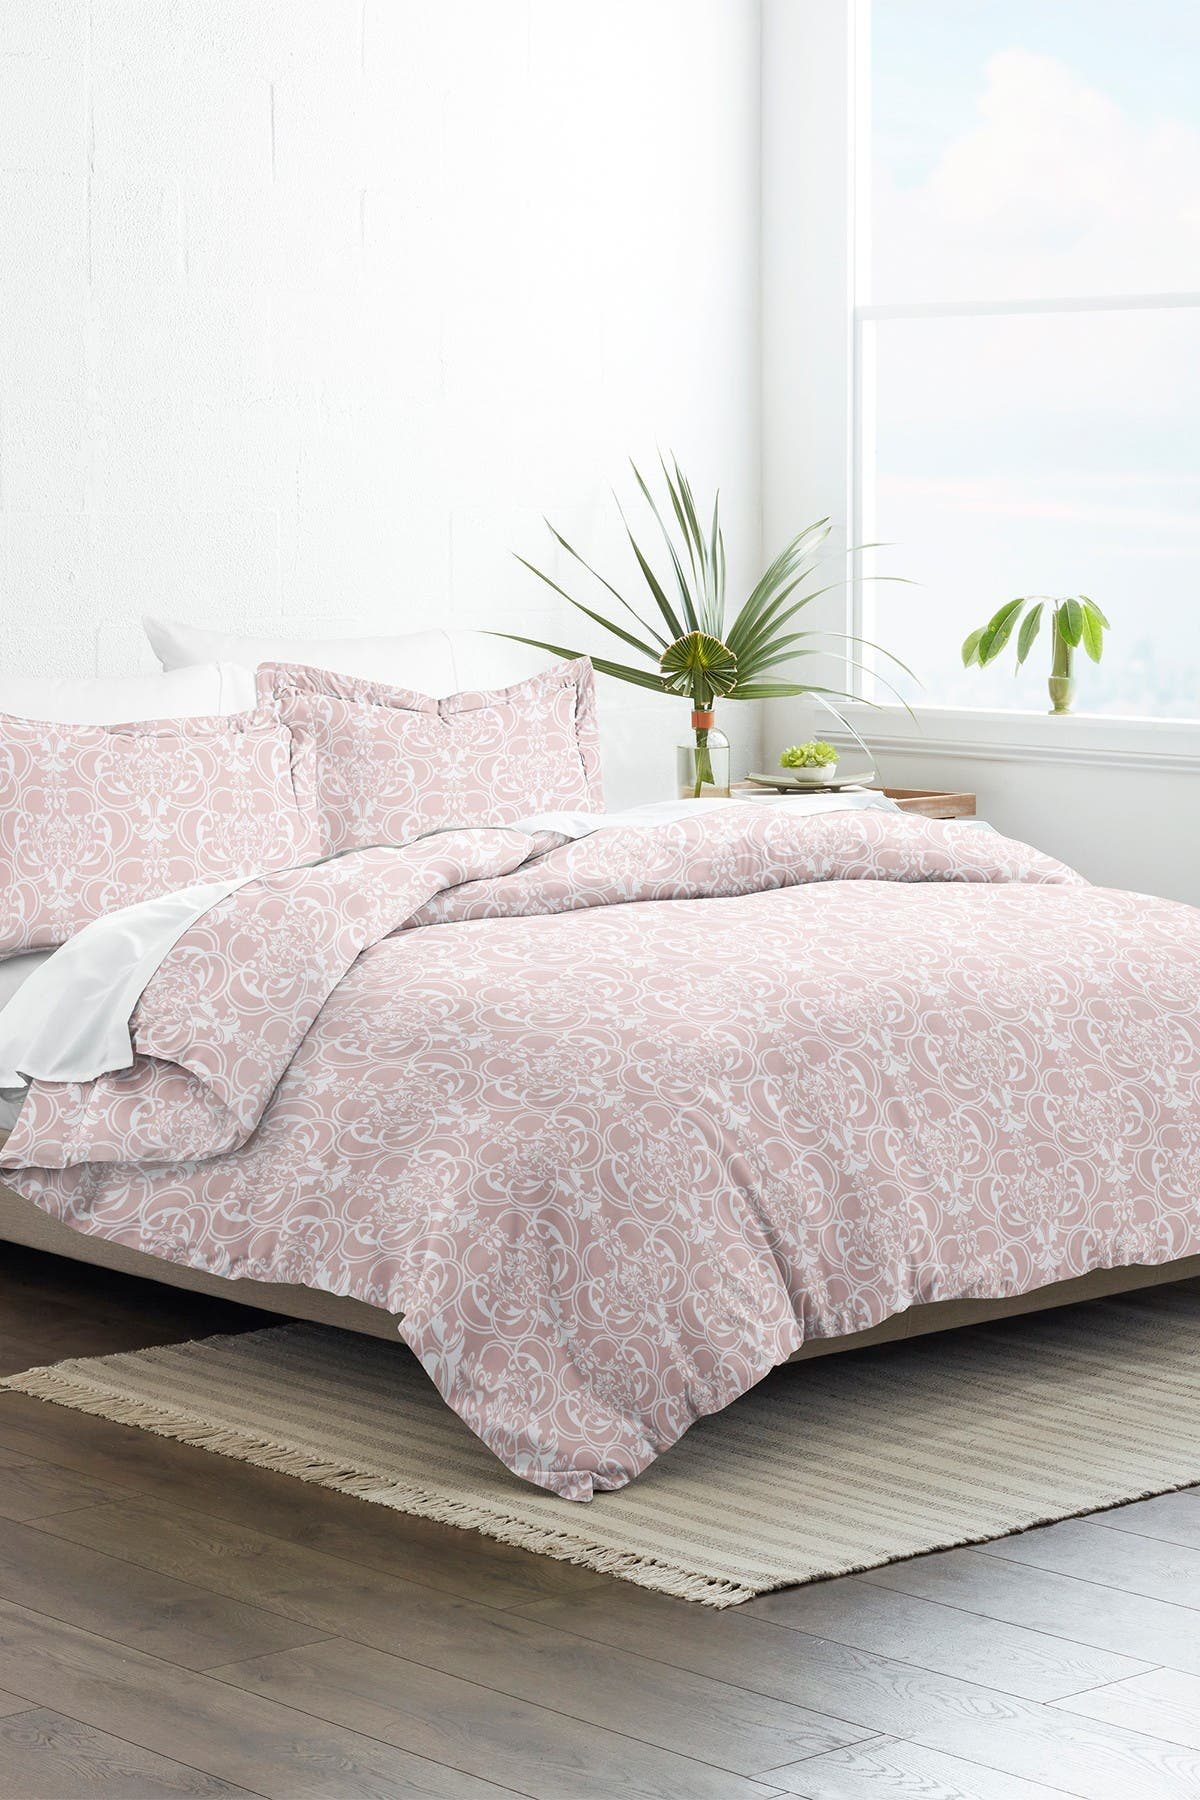 Image of IENJOY HOME Home Collection Premium Ultra Soft Romantic Damask Pattern 3-Piece King/California King Duvet Cover Set - Pink